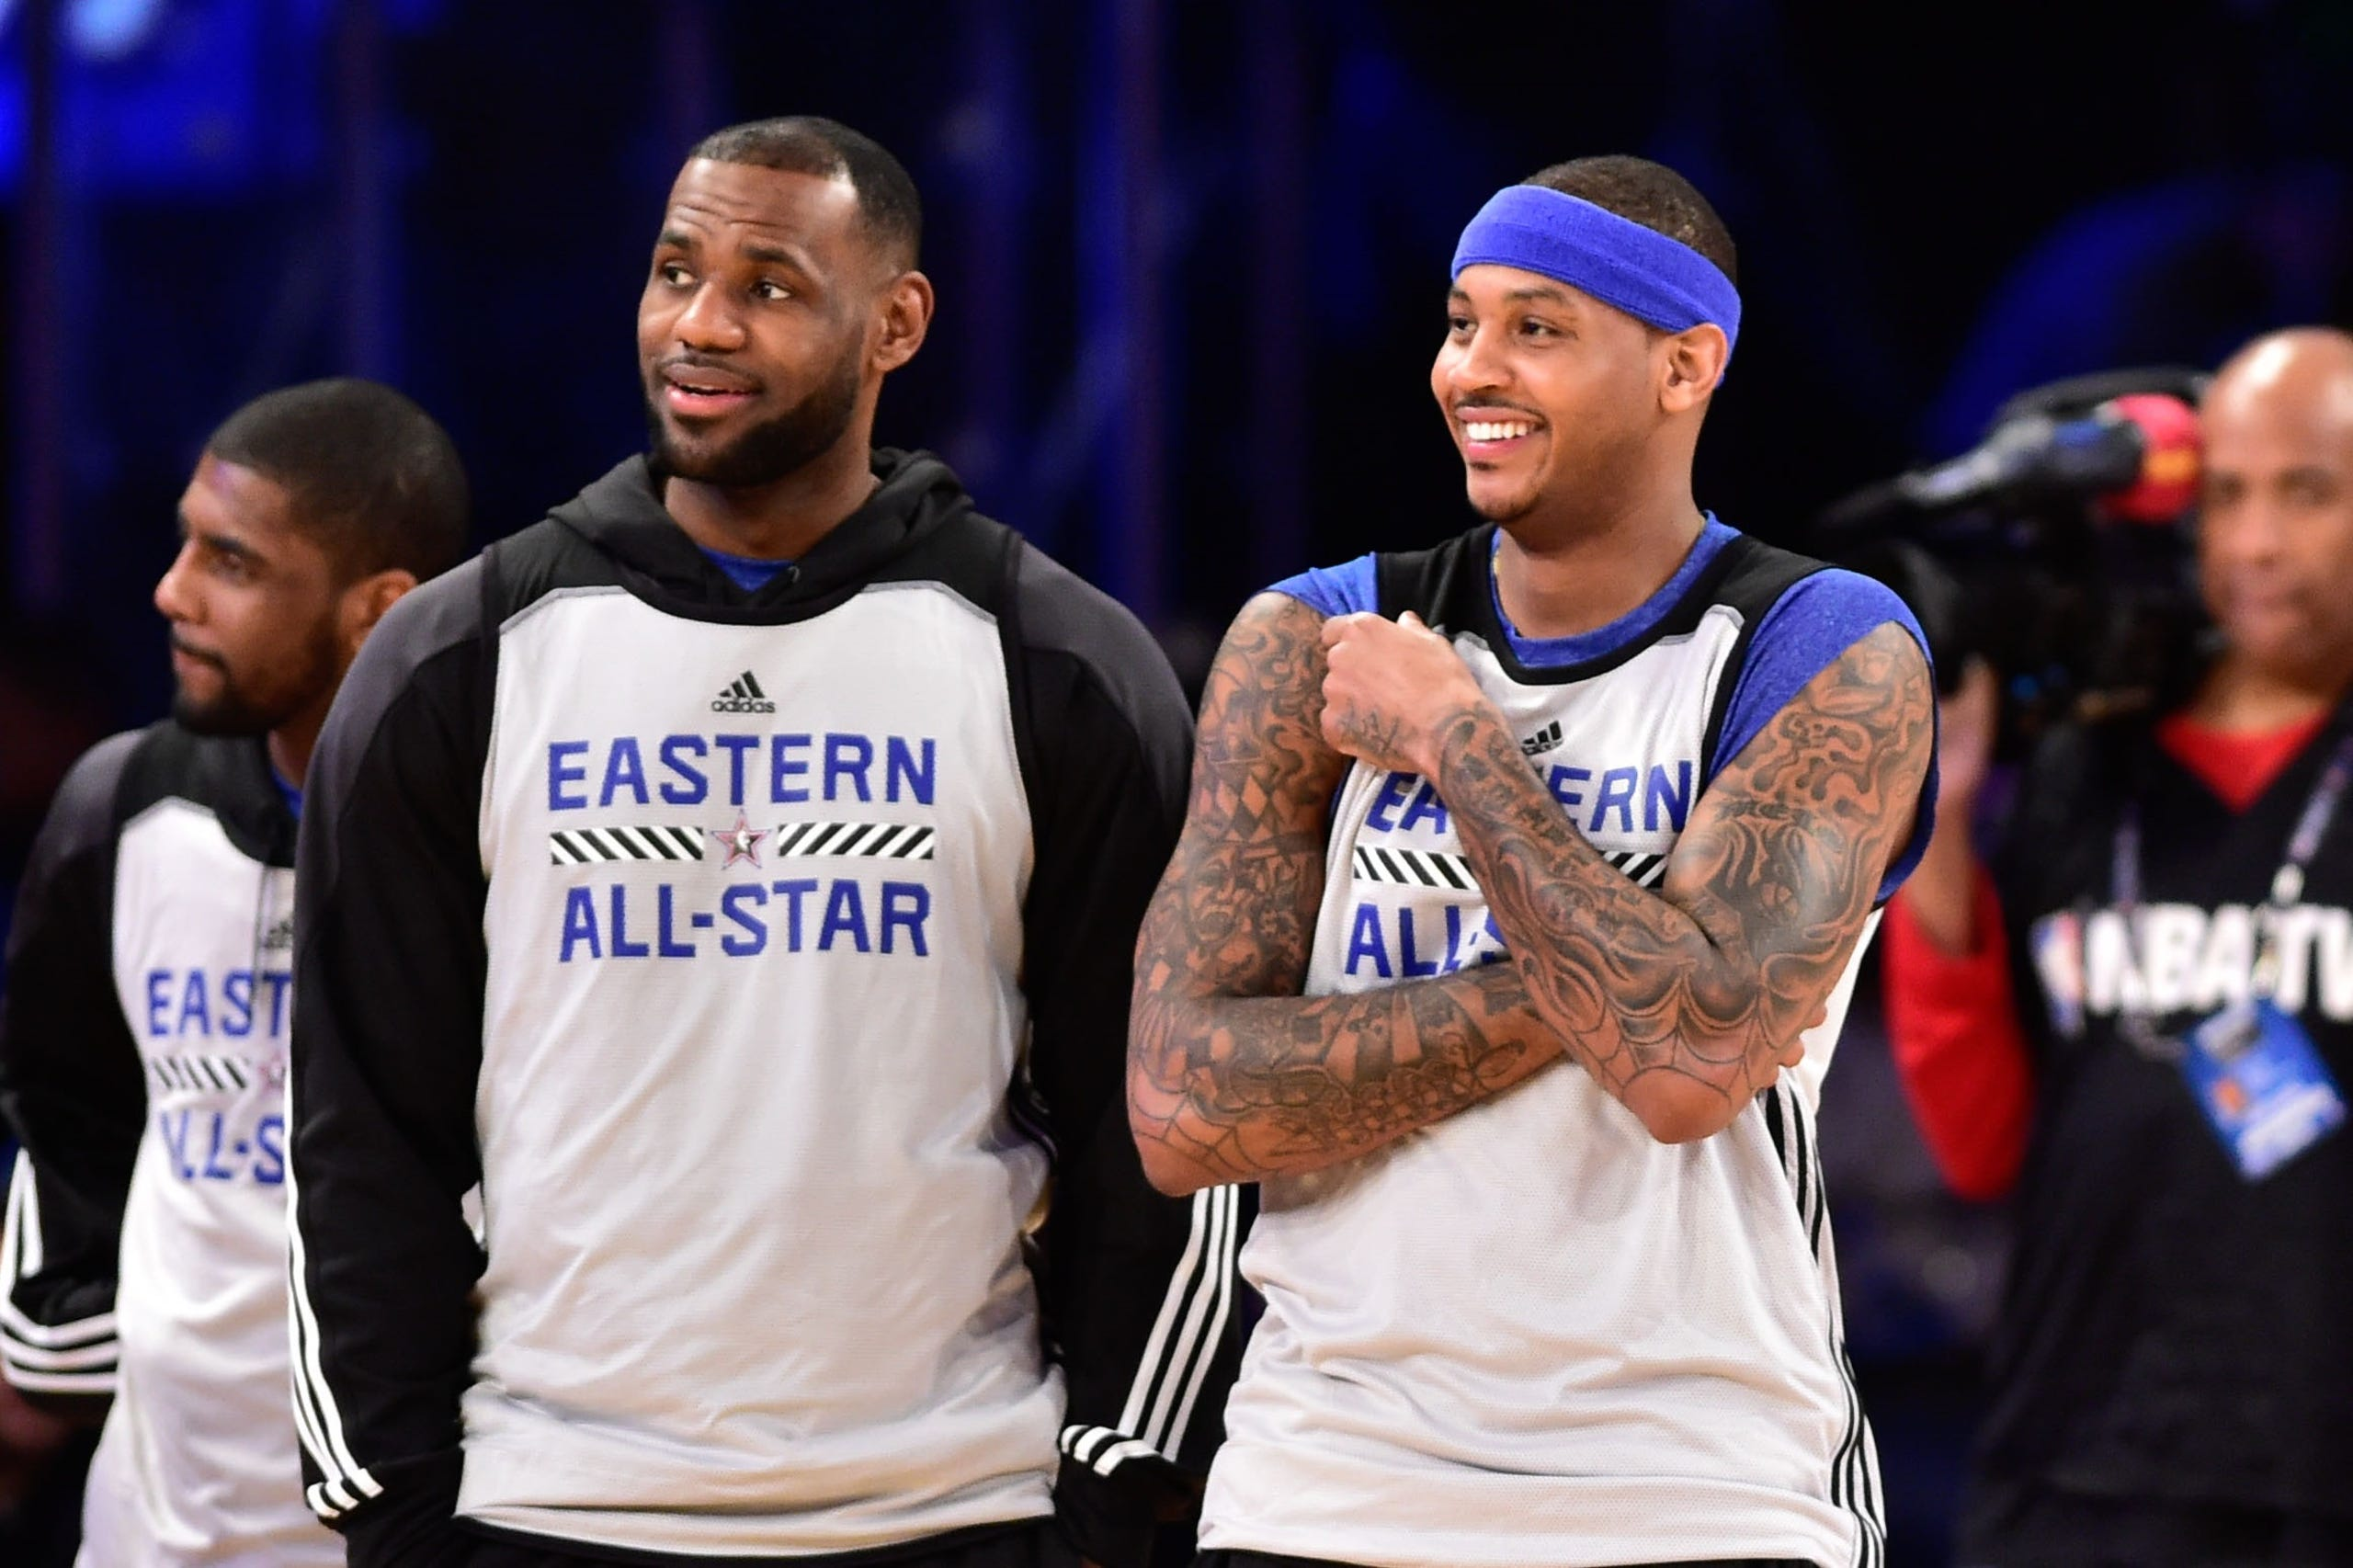 e9012516dd9 2016 NBA All-Star rosters